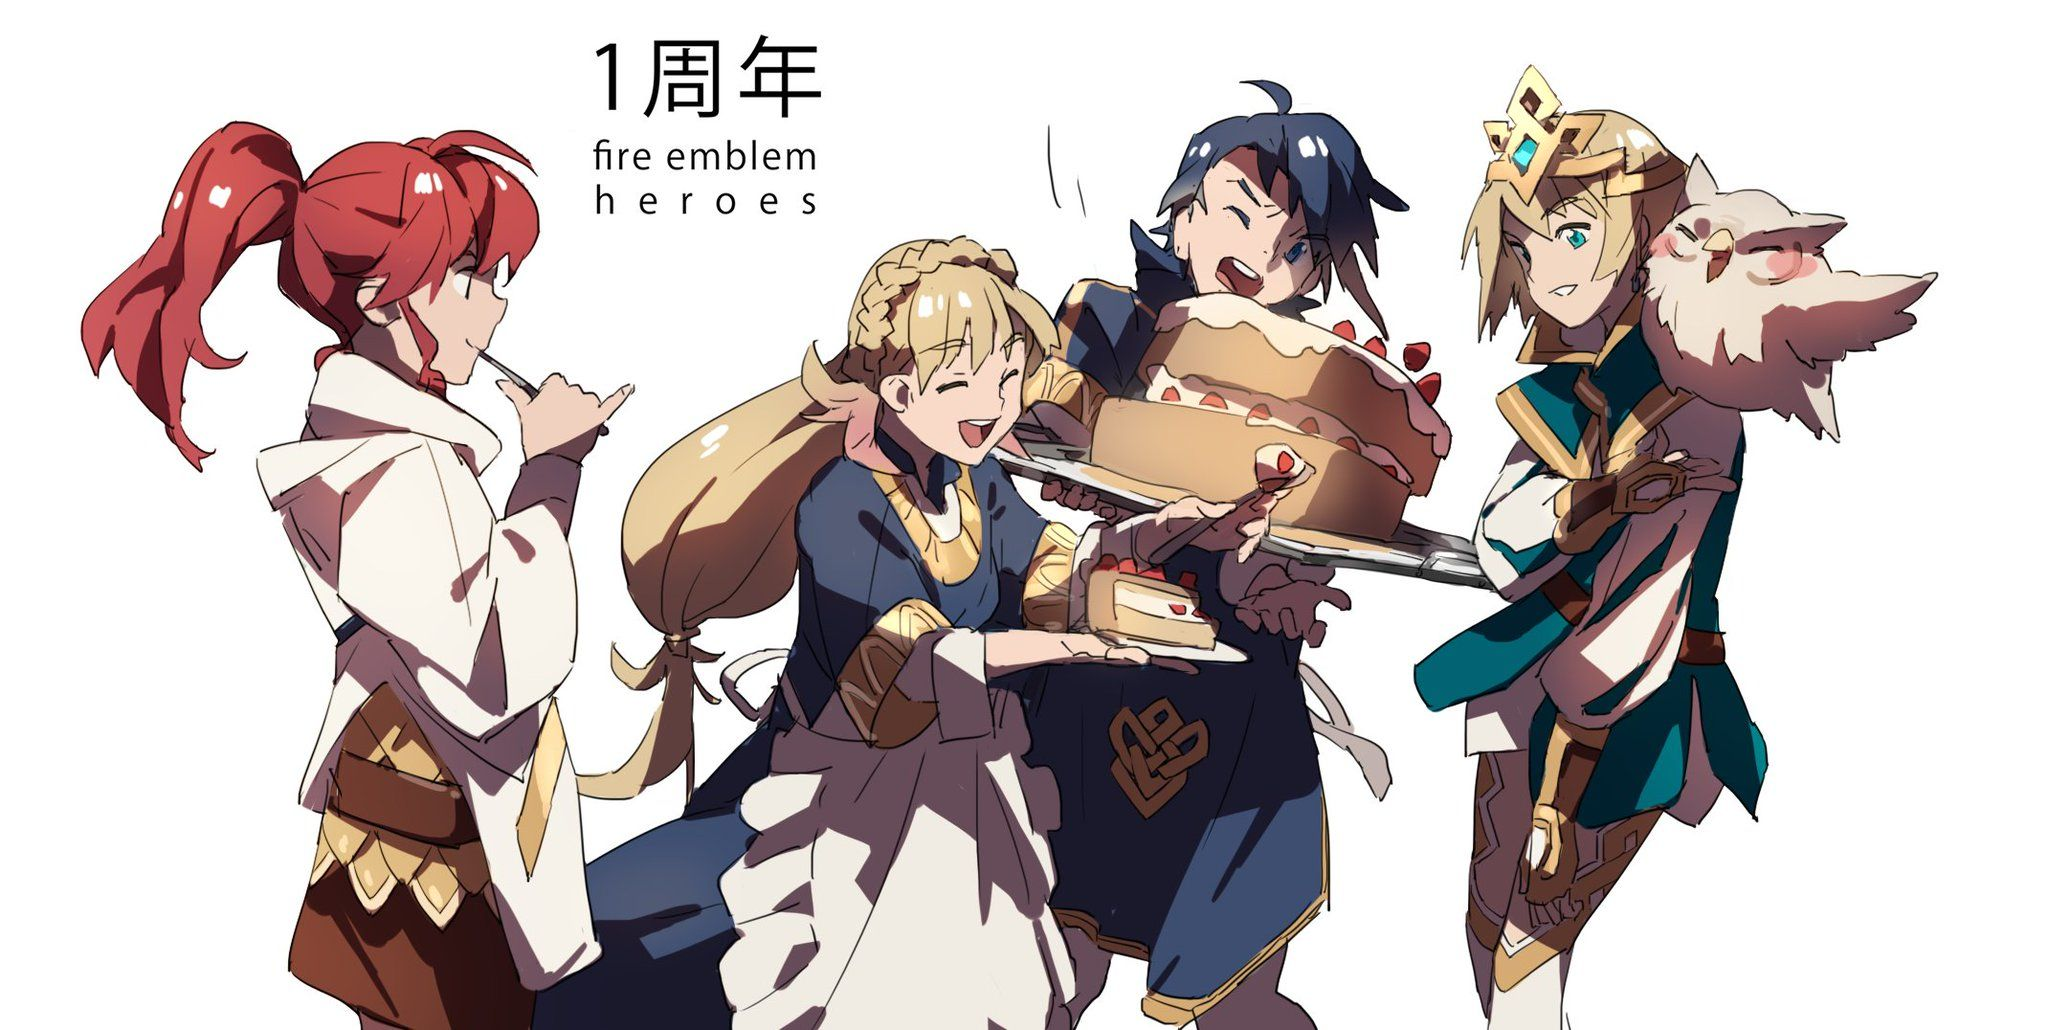 Anna, Alfonse, Sharena, Fjorm And Feh Sharing Cake